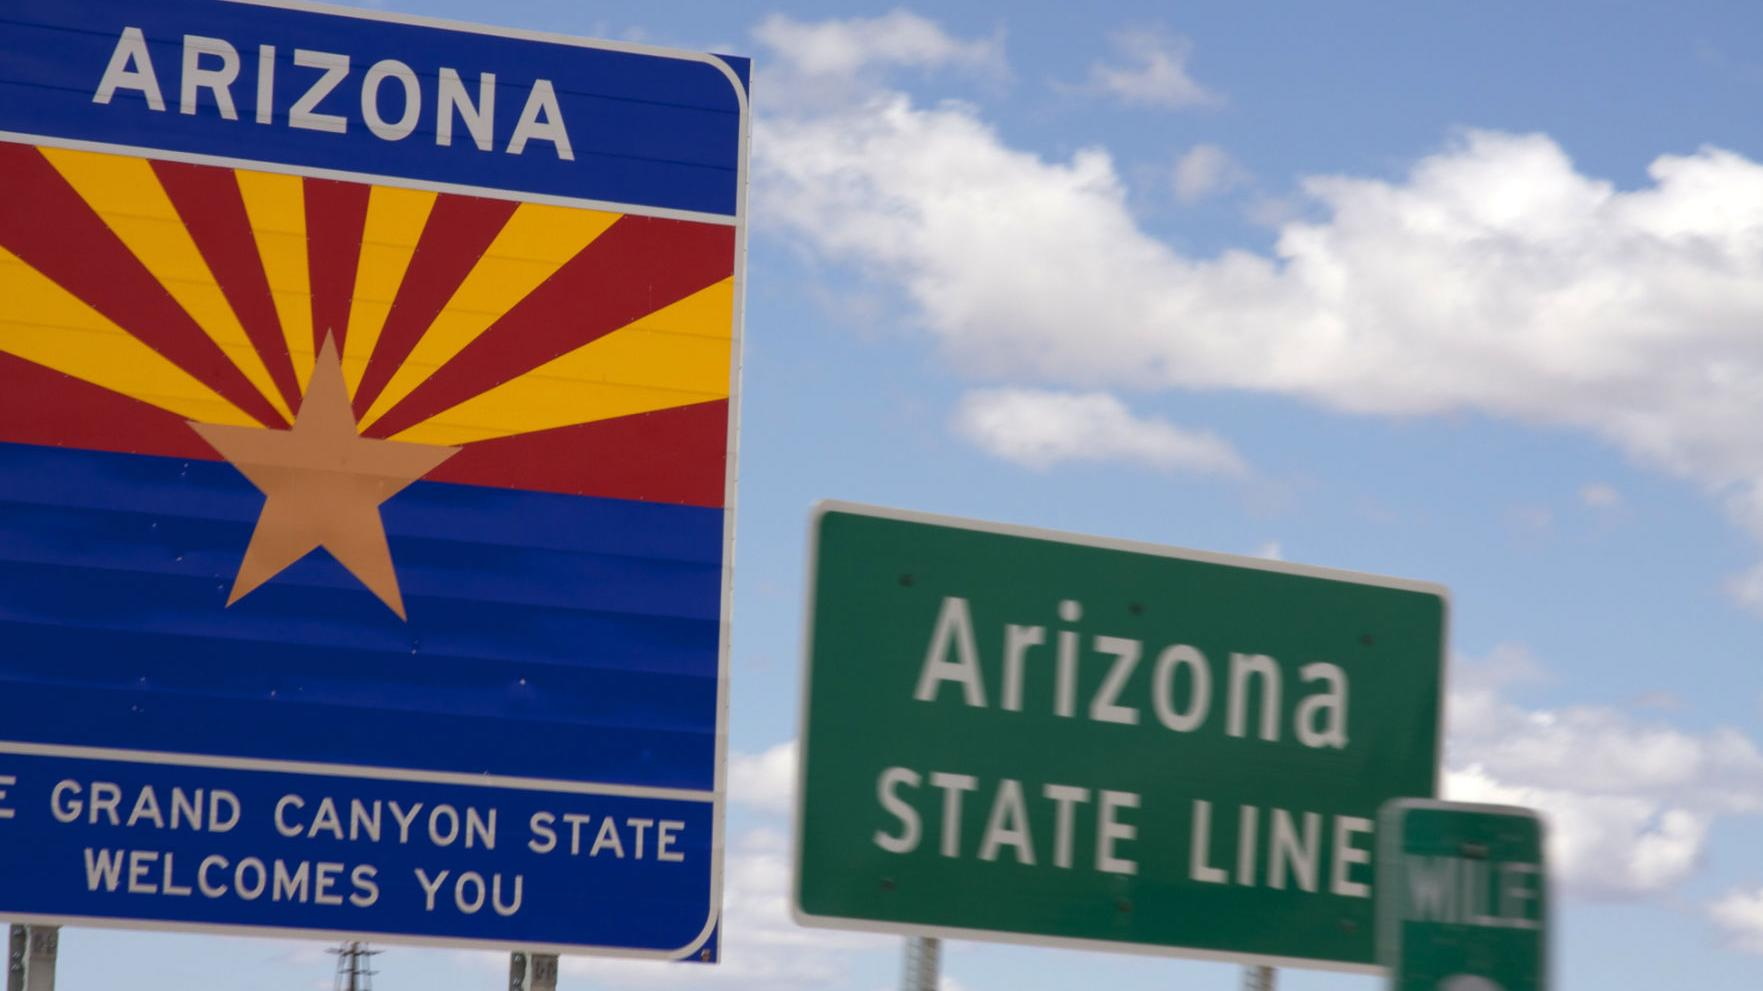 Rebranding Arizona: It's all about the 'lifestyle'